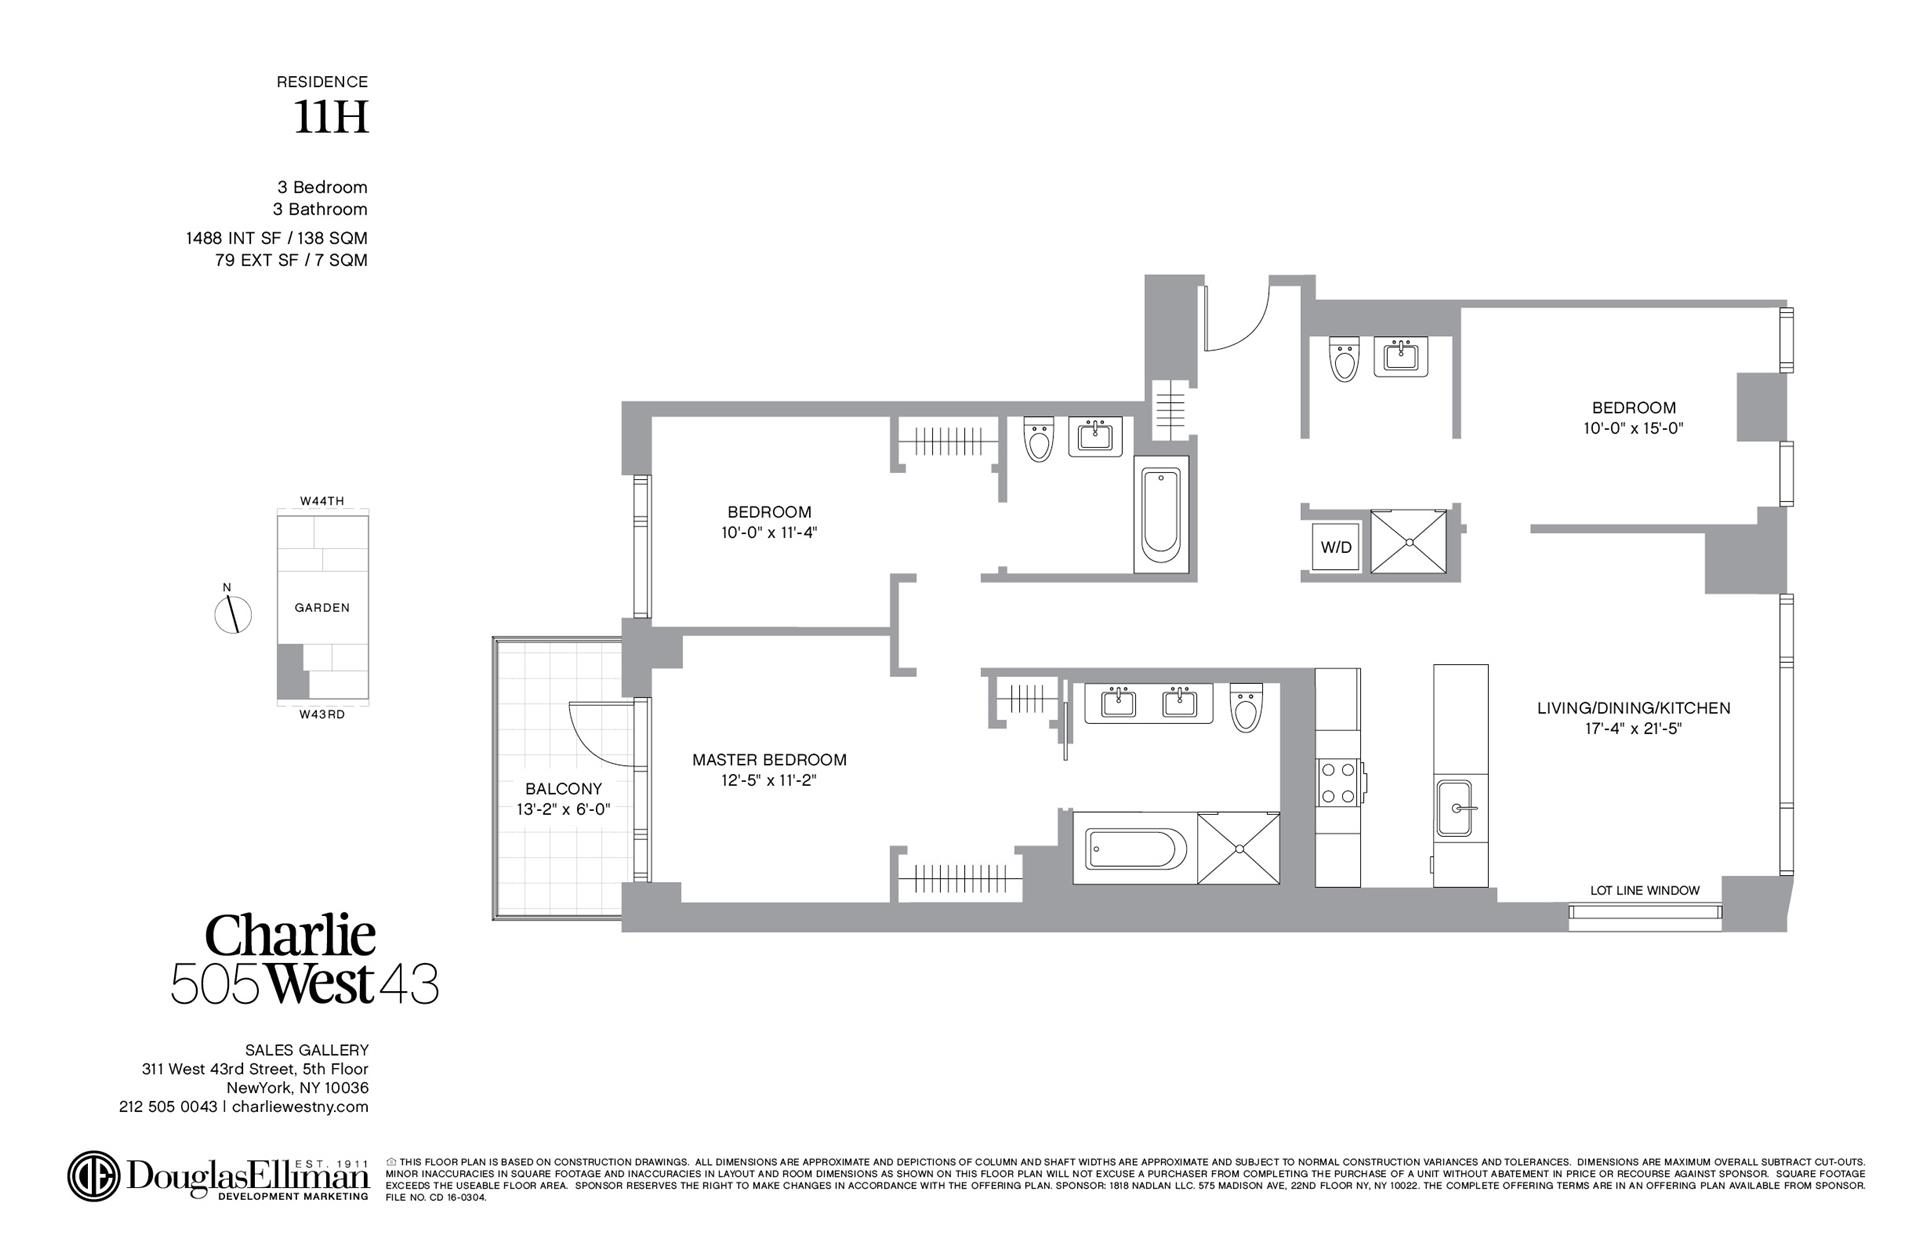 Floor plan of 505 West 43rd St, 11H - Clinton, New York